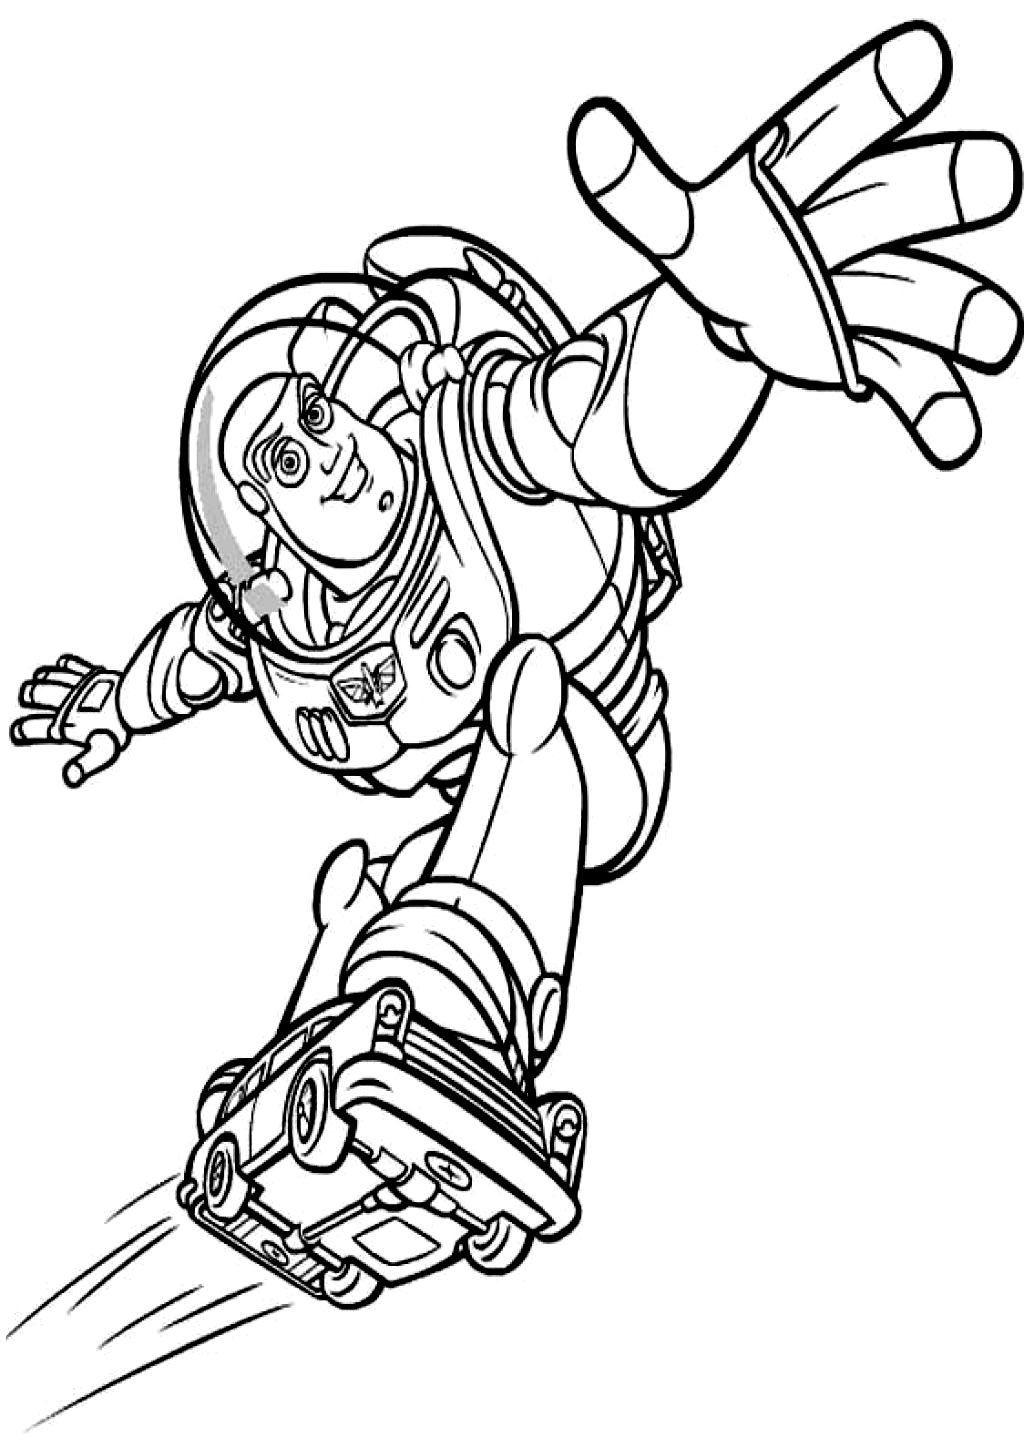 Free Printable Buzz Lightyear Coloring Pages For Kids